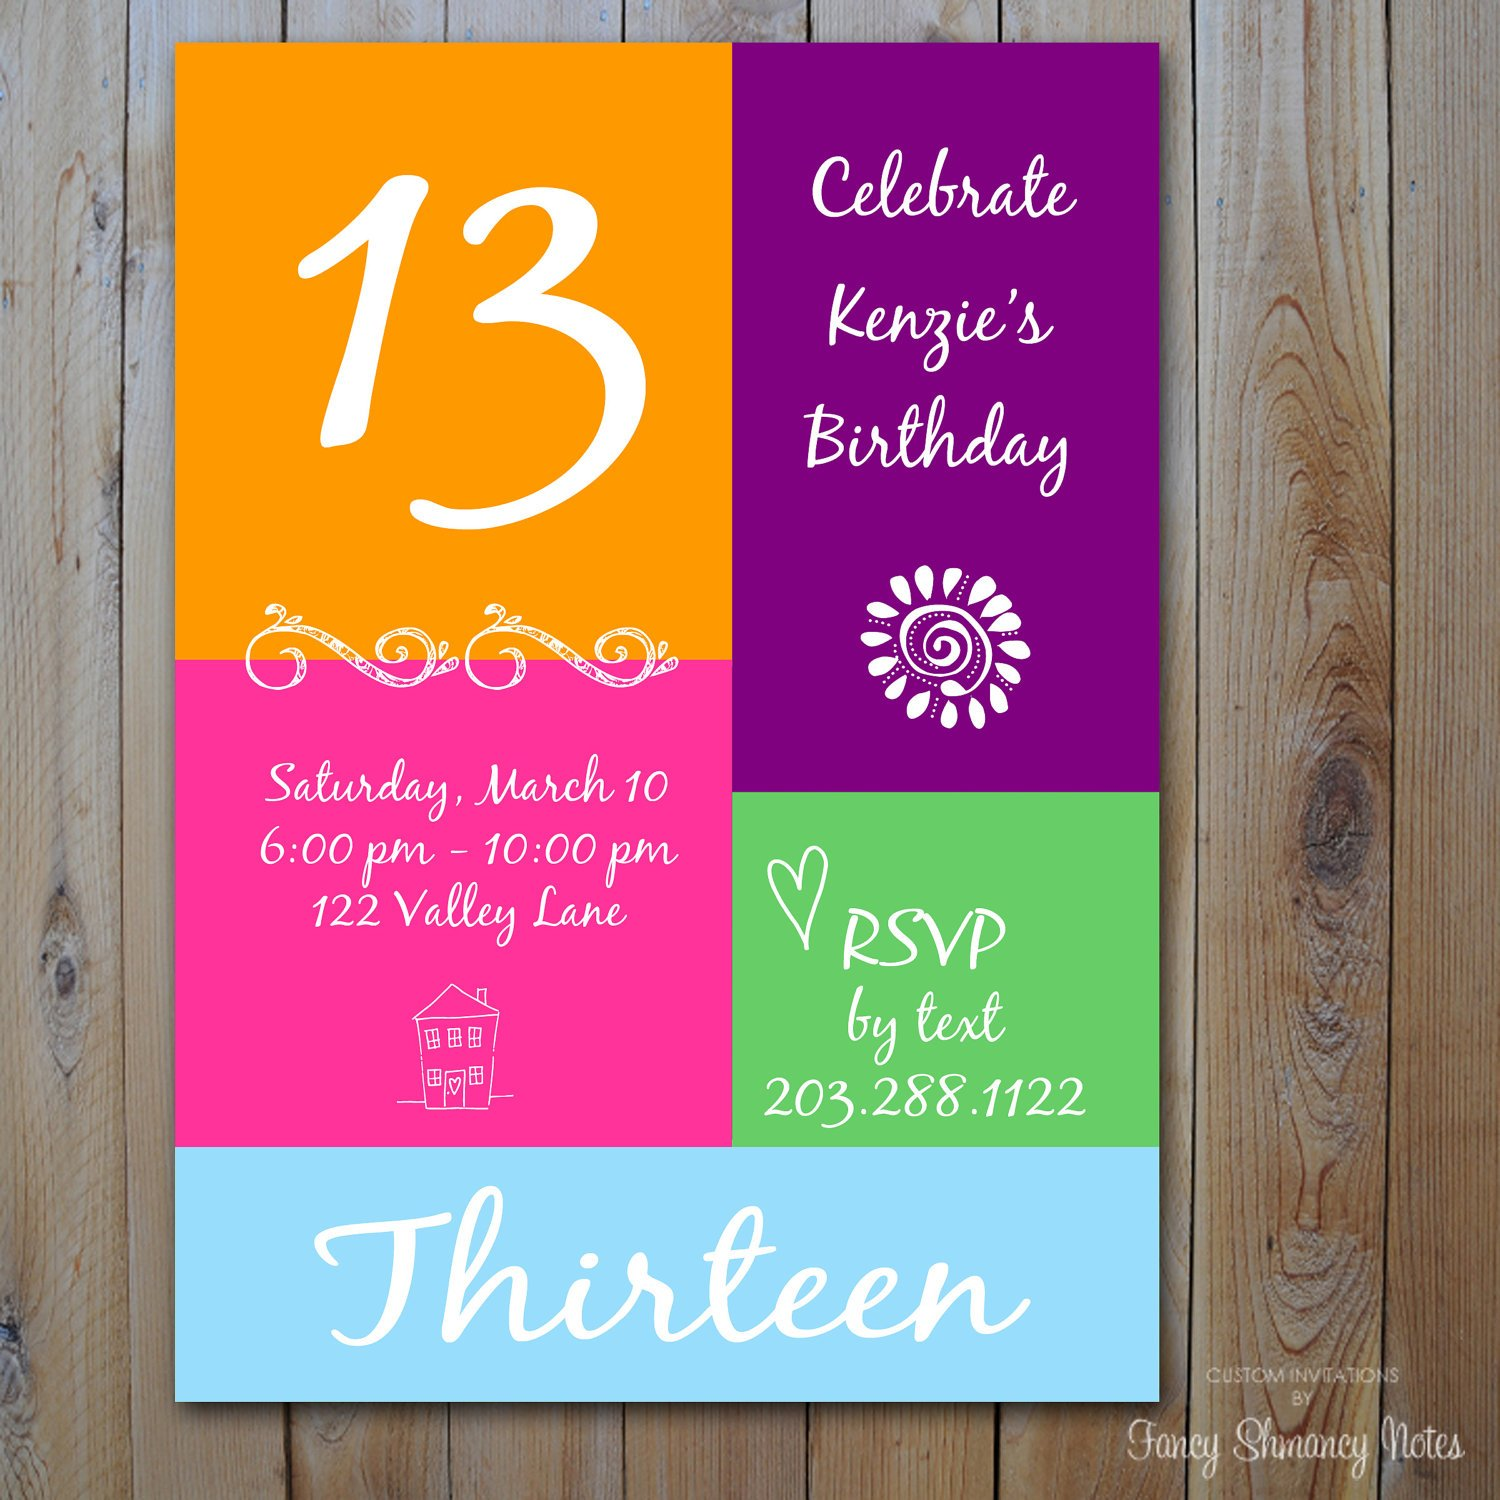 13 Years Old Birthday Party Invitations FREE Invitation Templates